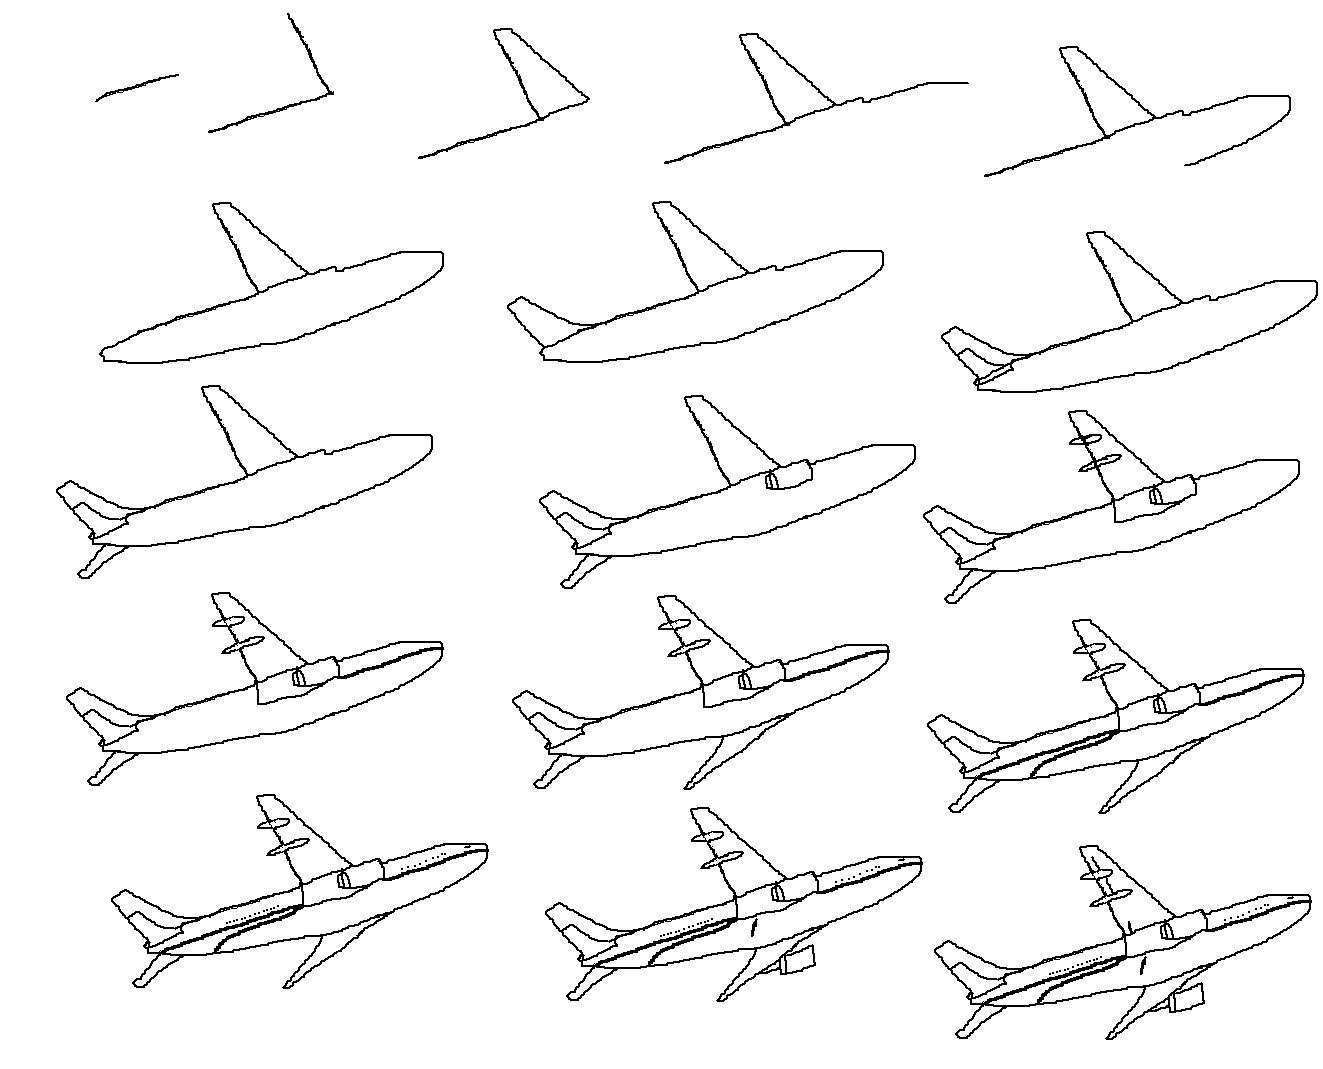 how to draw jet step by step how to draw aeroplane for kids slide 2 click to jet how by step step draw to